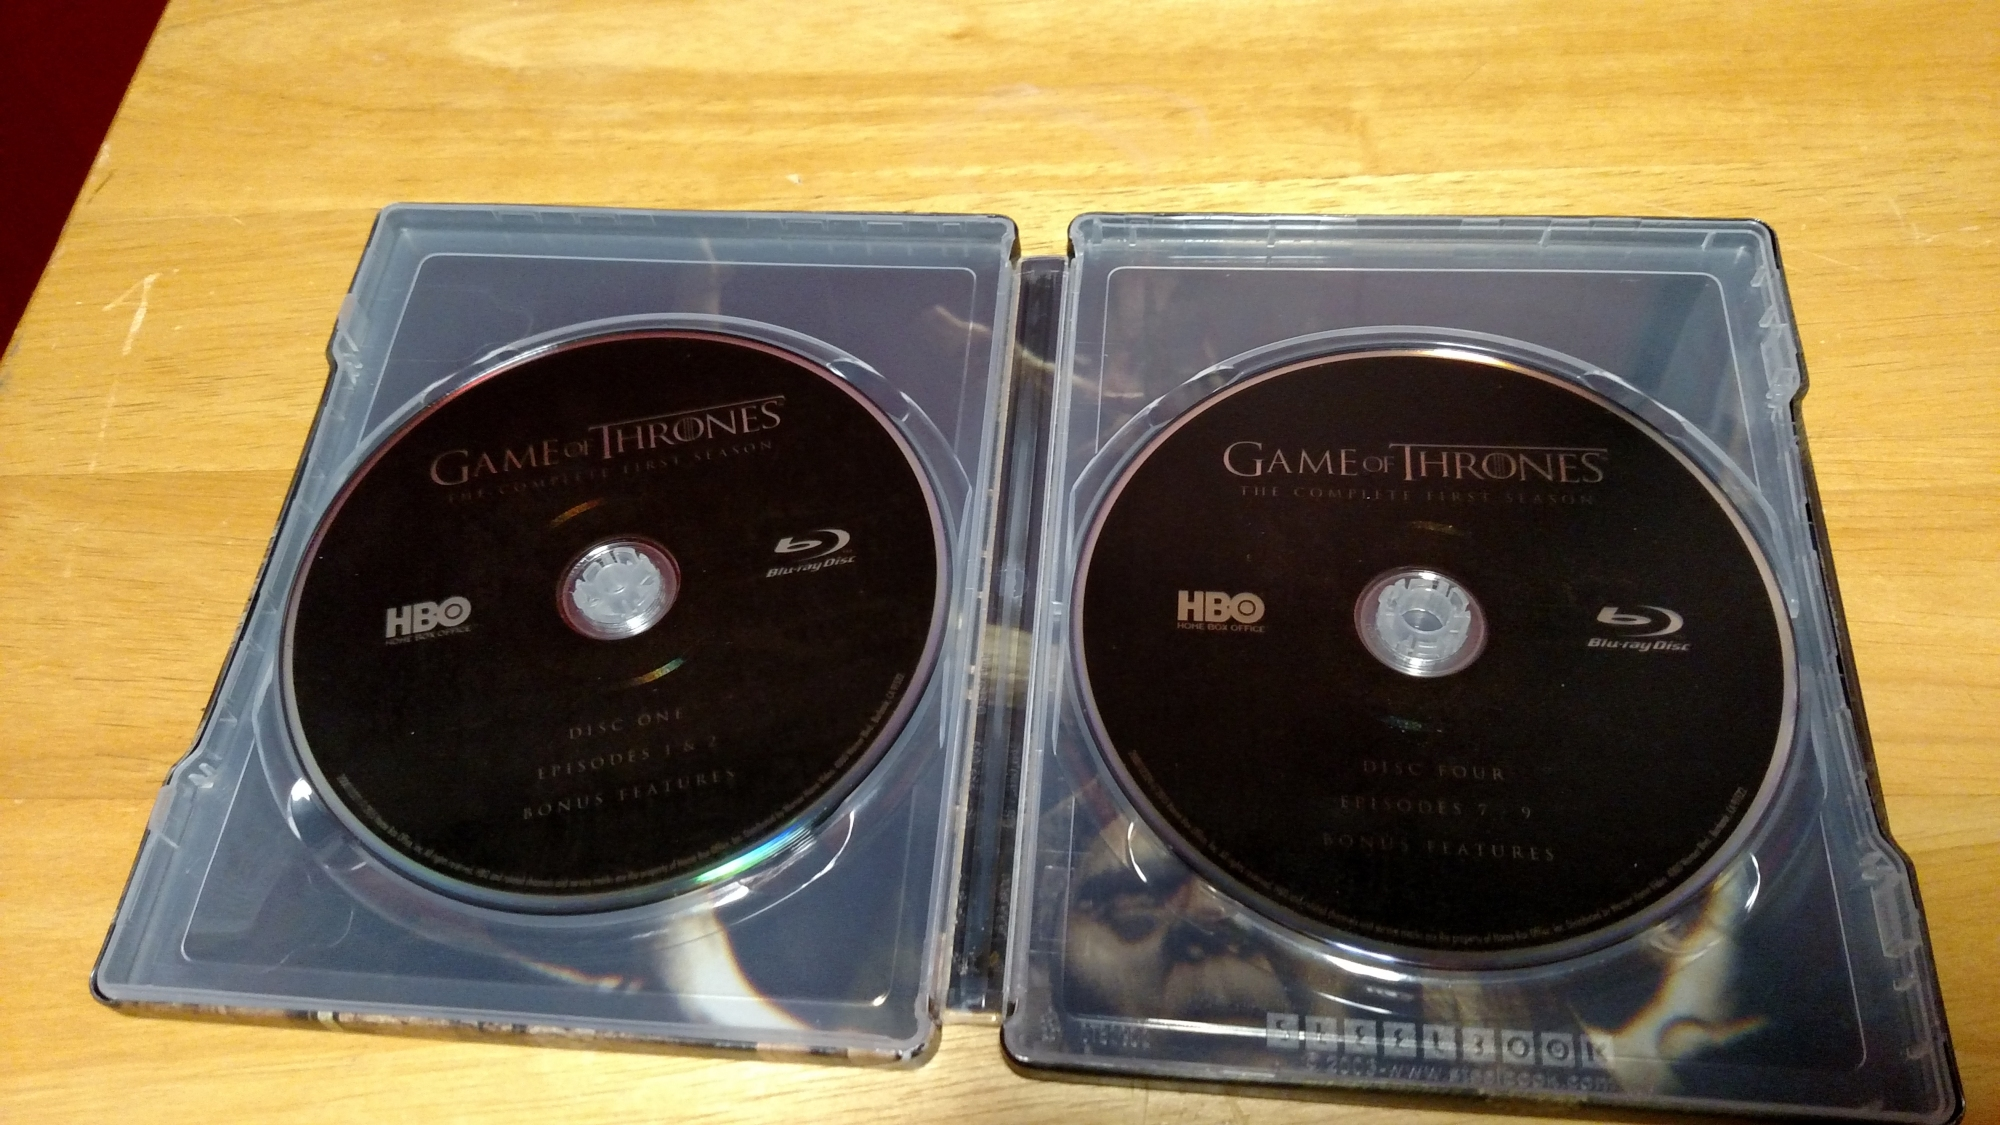 Game of Thrones SteelBook Inside - Discs Stacked